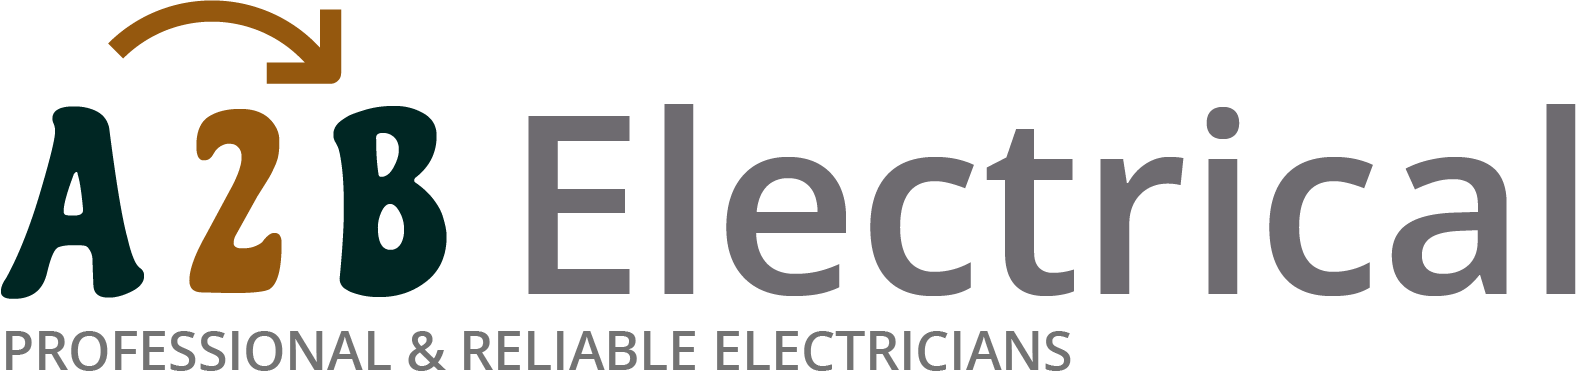 If you have electrical wiring problems in Braintree, we can provide an electrician to have a look for you.